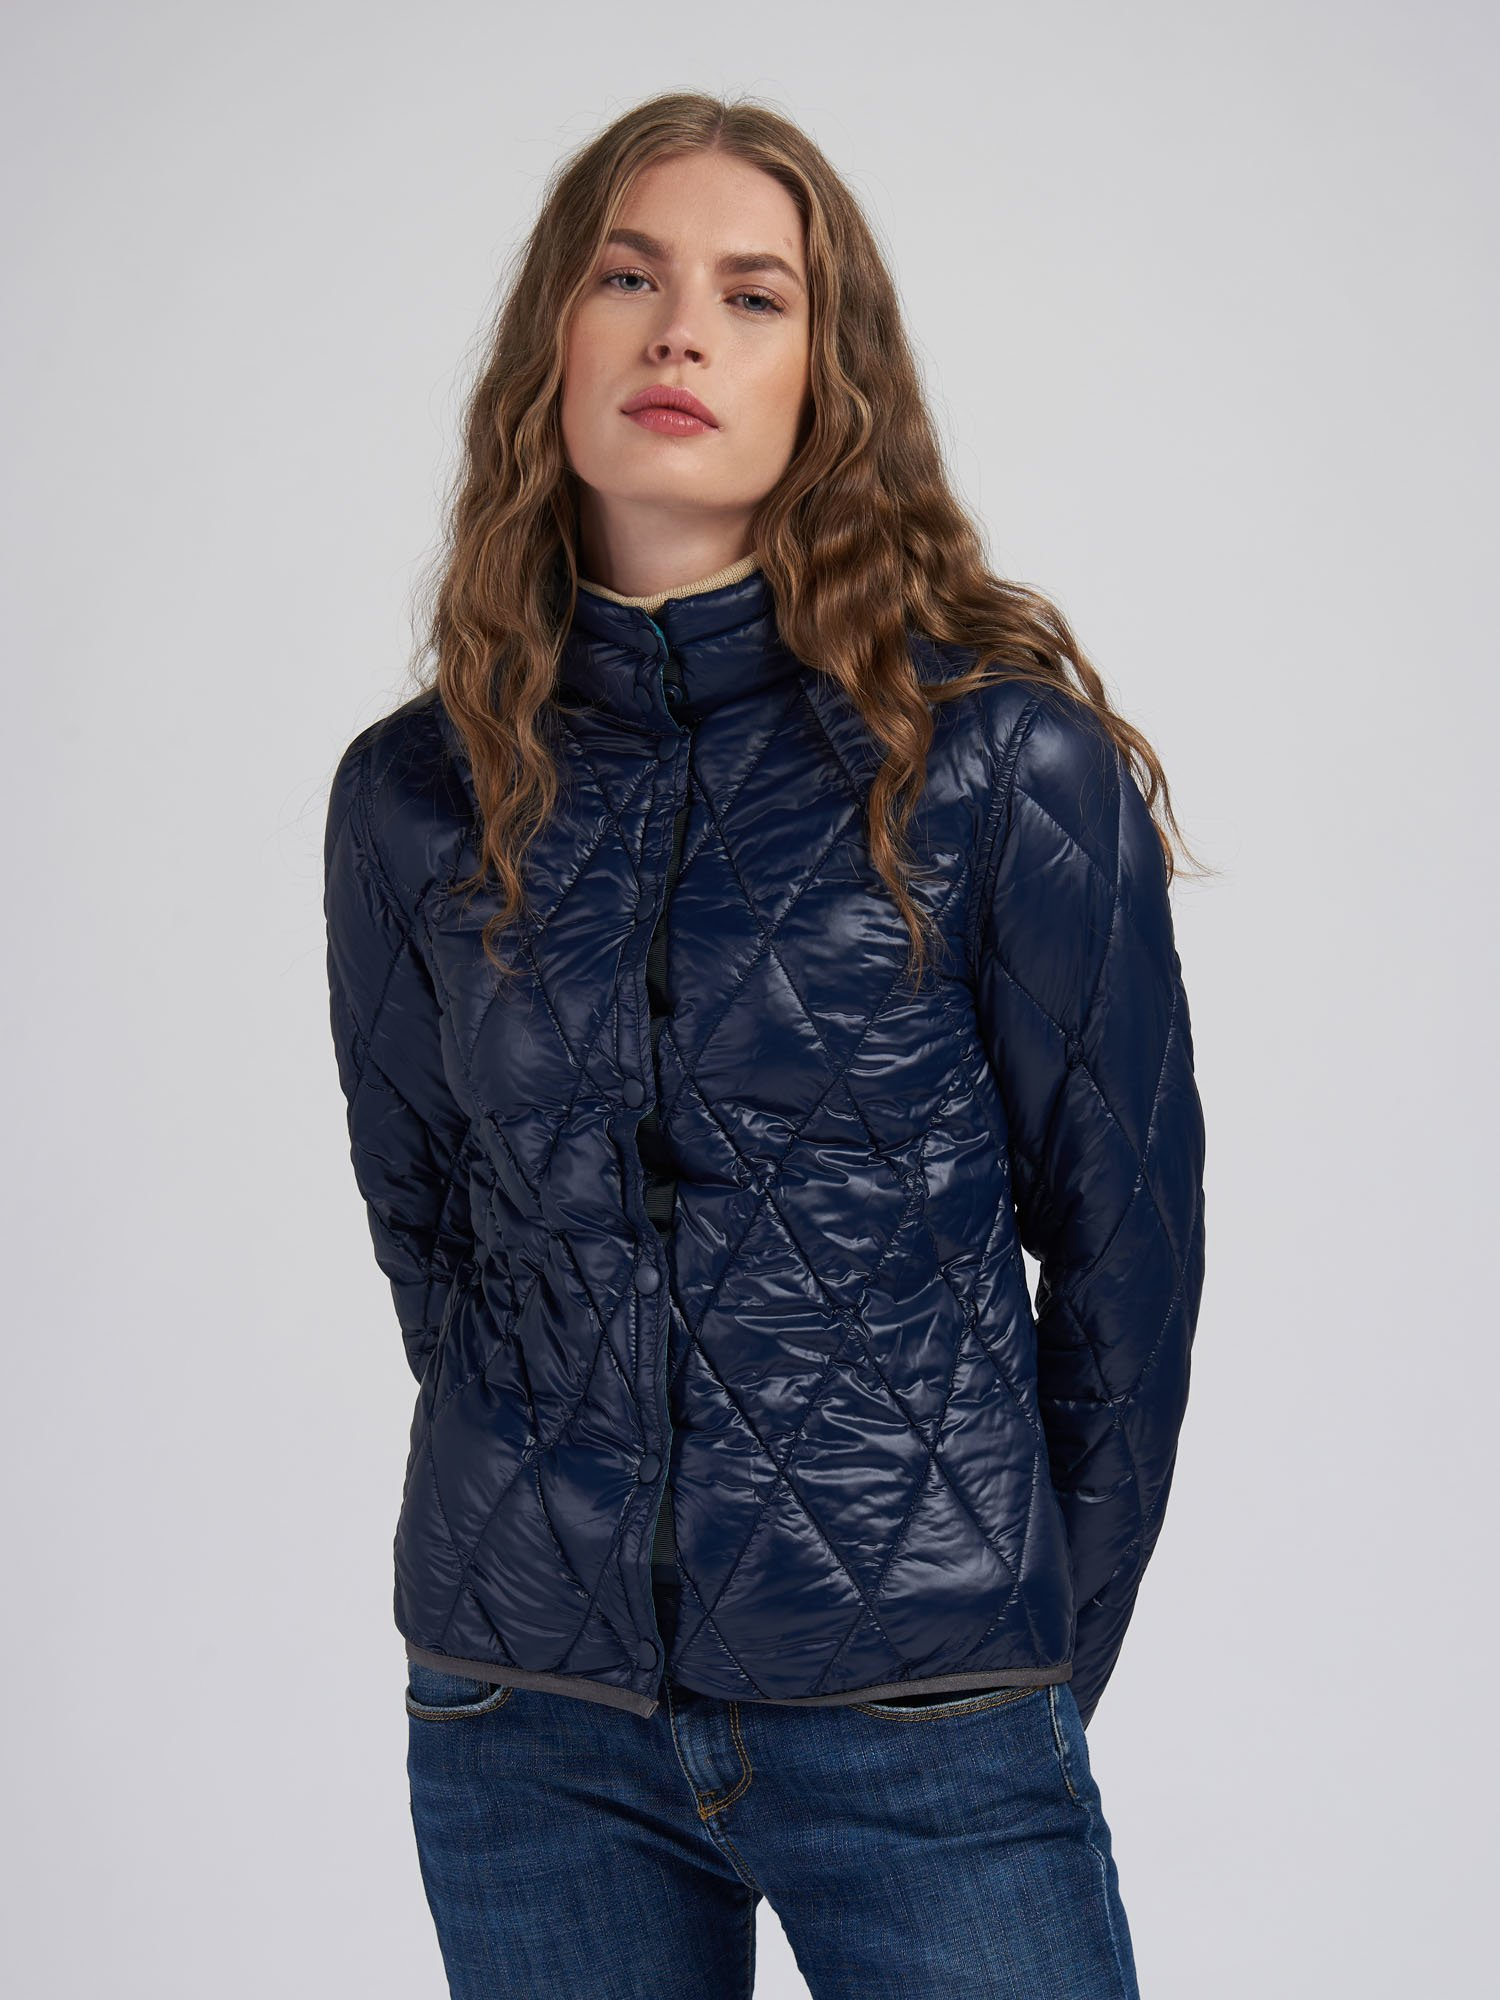 BPD FOUR SEASONS WOMAN DOWN JACKET - Blauer